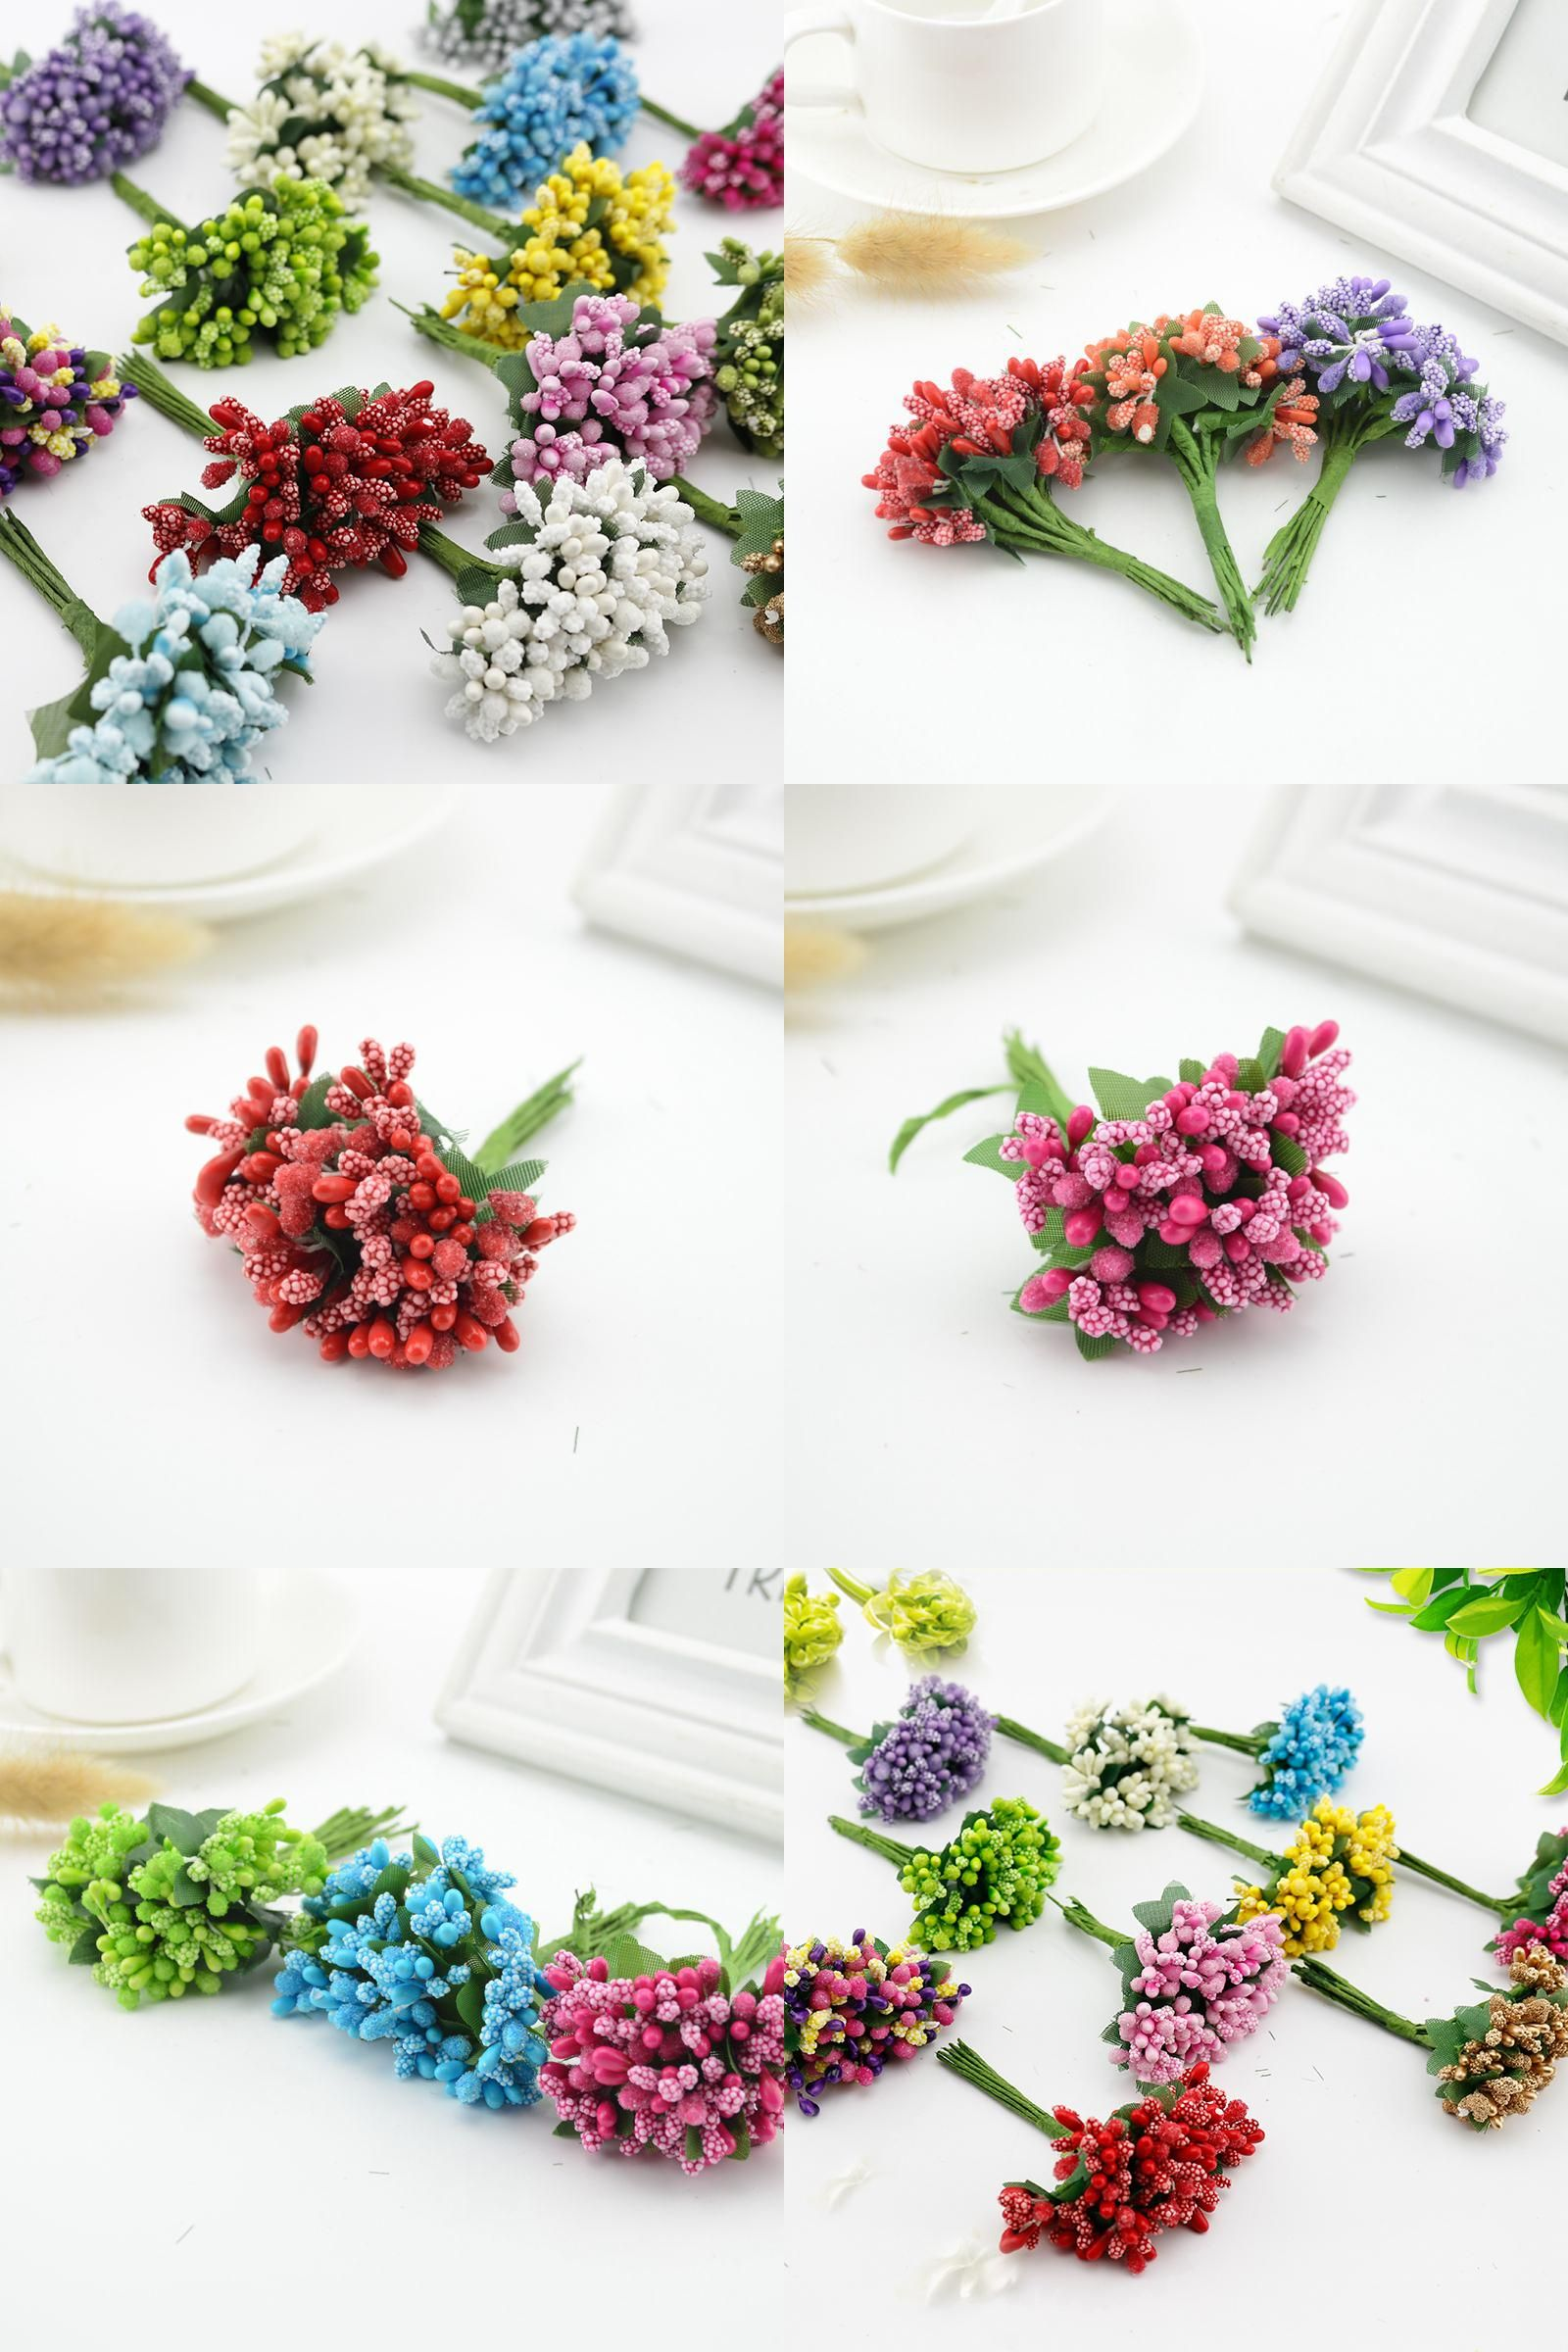 Visit to buy 12pcs mulberry silk party berry stamen leaf cheap visit to buy 12pcs mulberry silk party berry stamen leaf cheap artificial flowers decoration izmirmasajfo